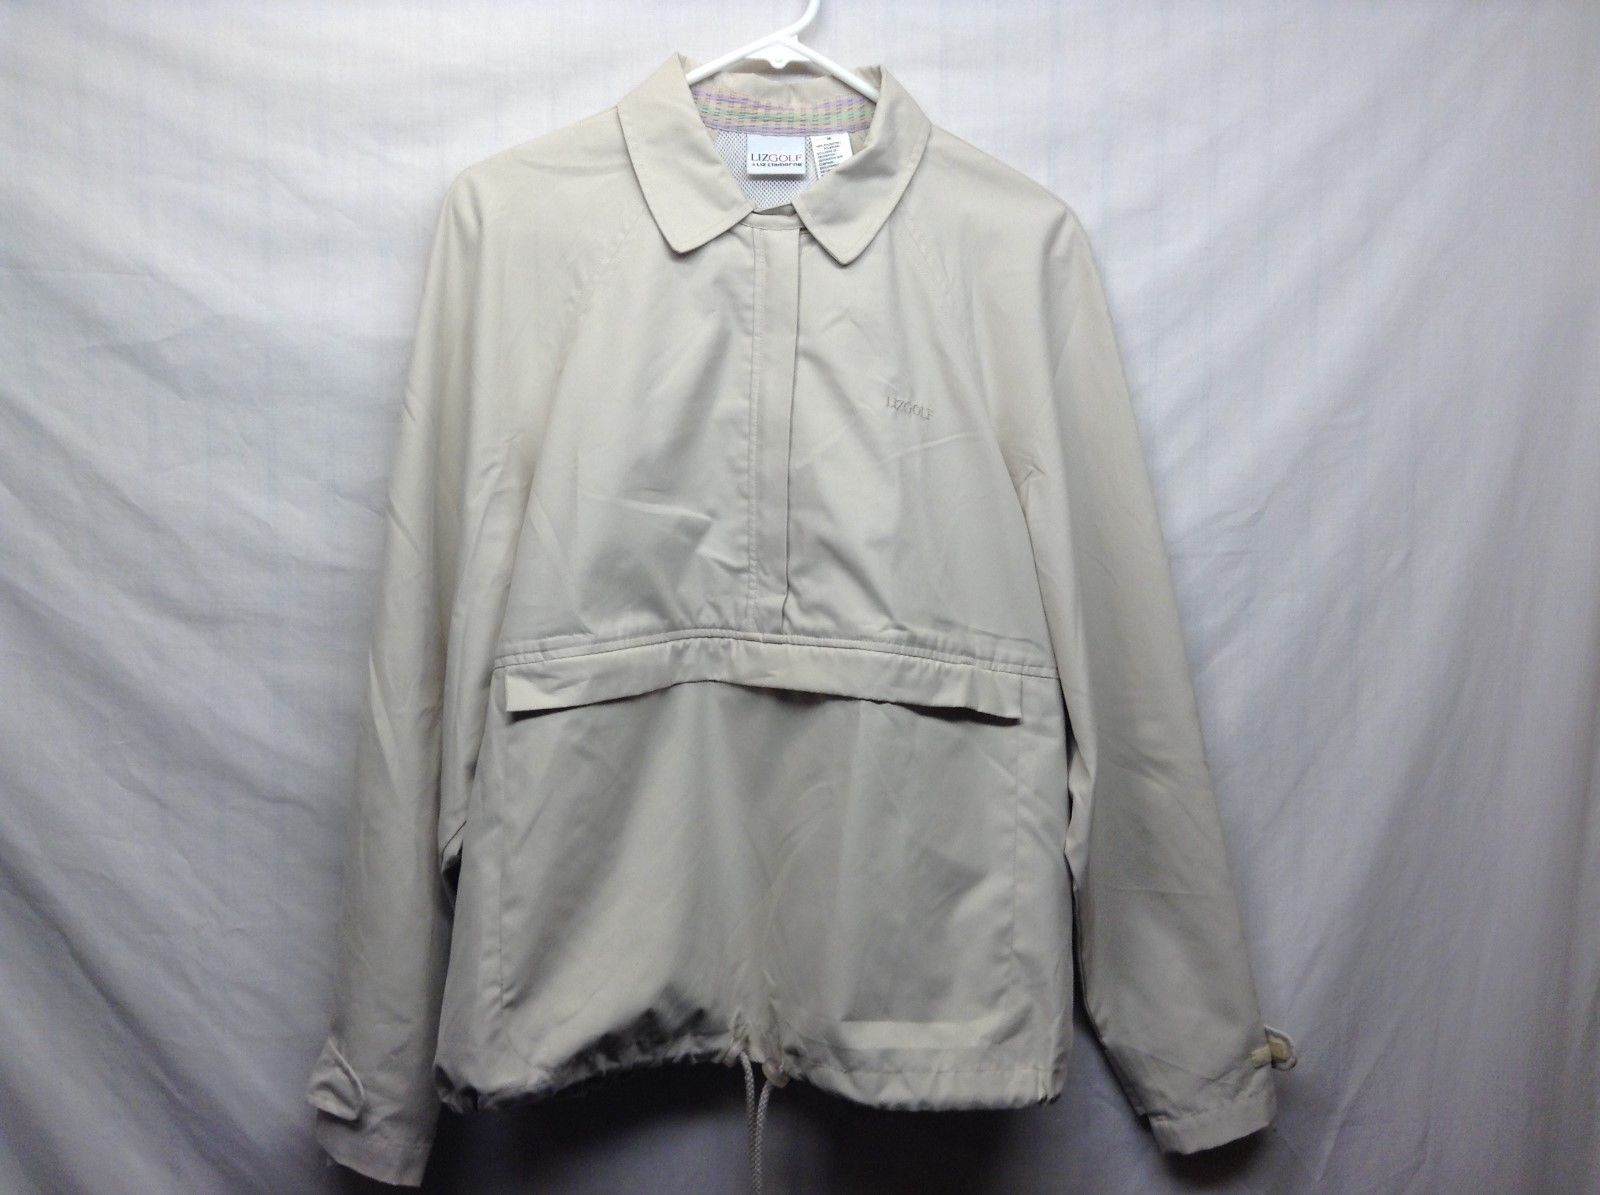 Ladies Ivory Colored Golf Rain Jacket by Liz Claiborne Sz M